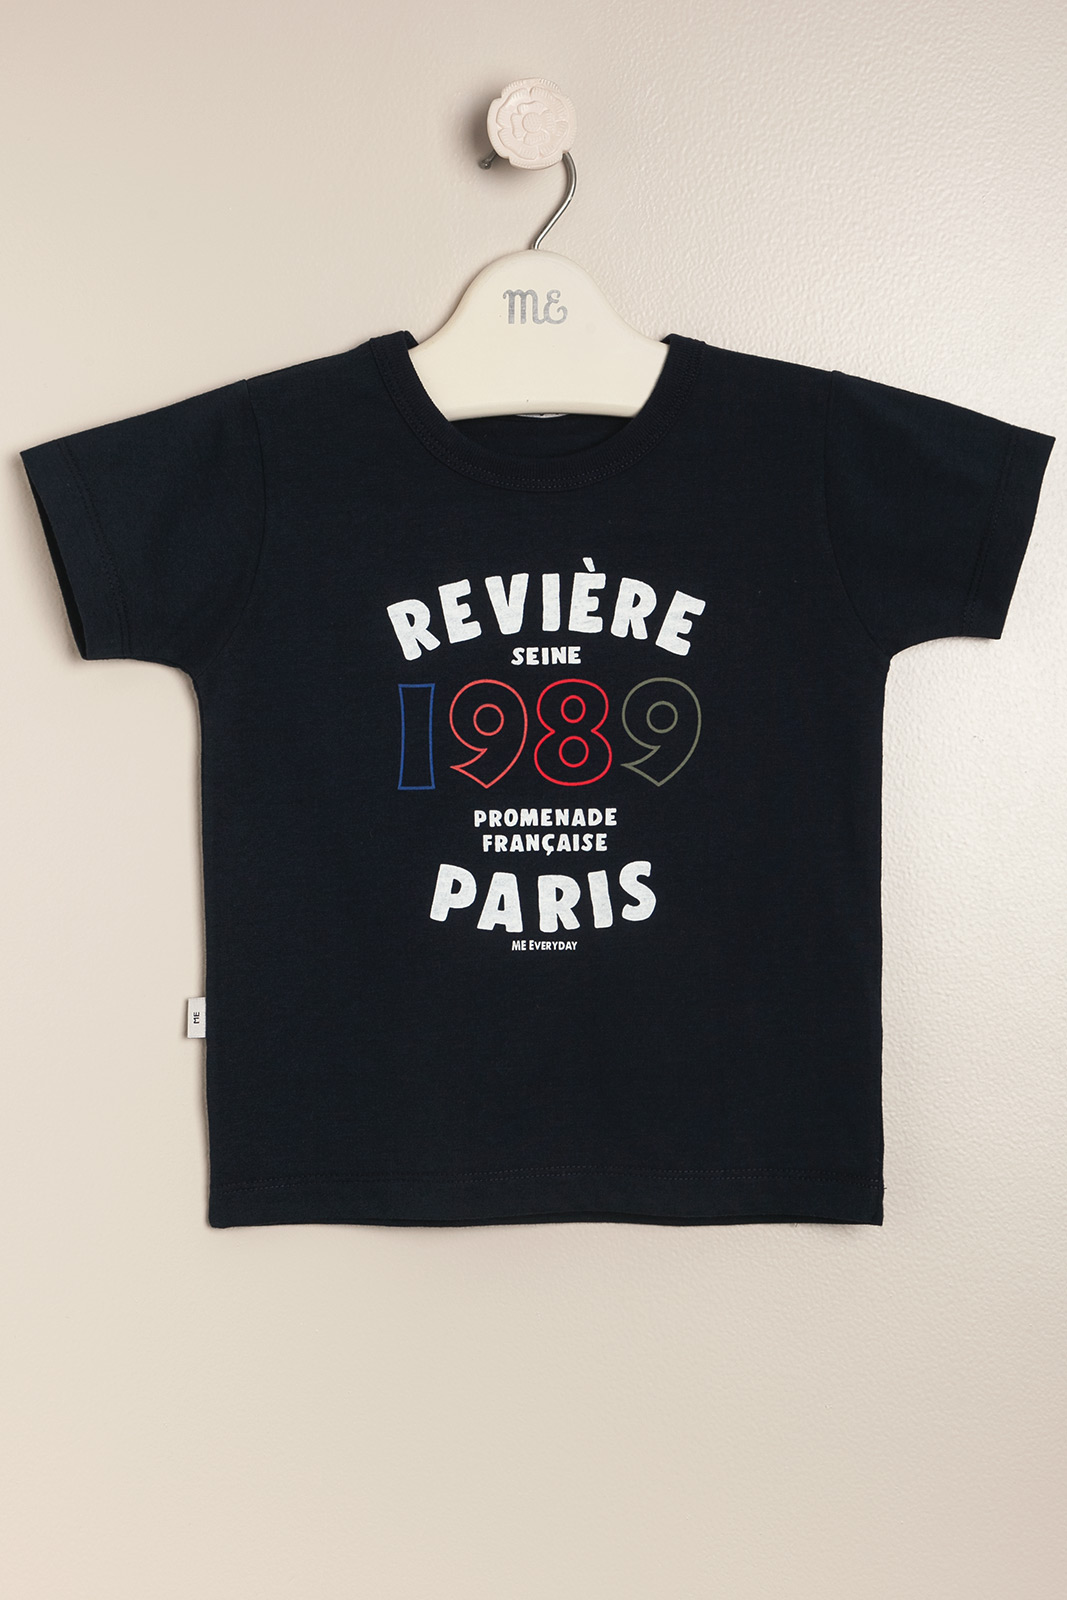 Remera reviere